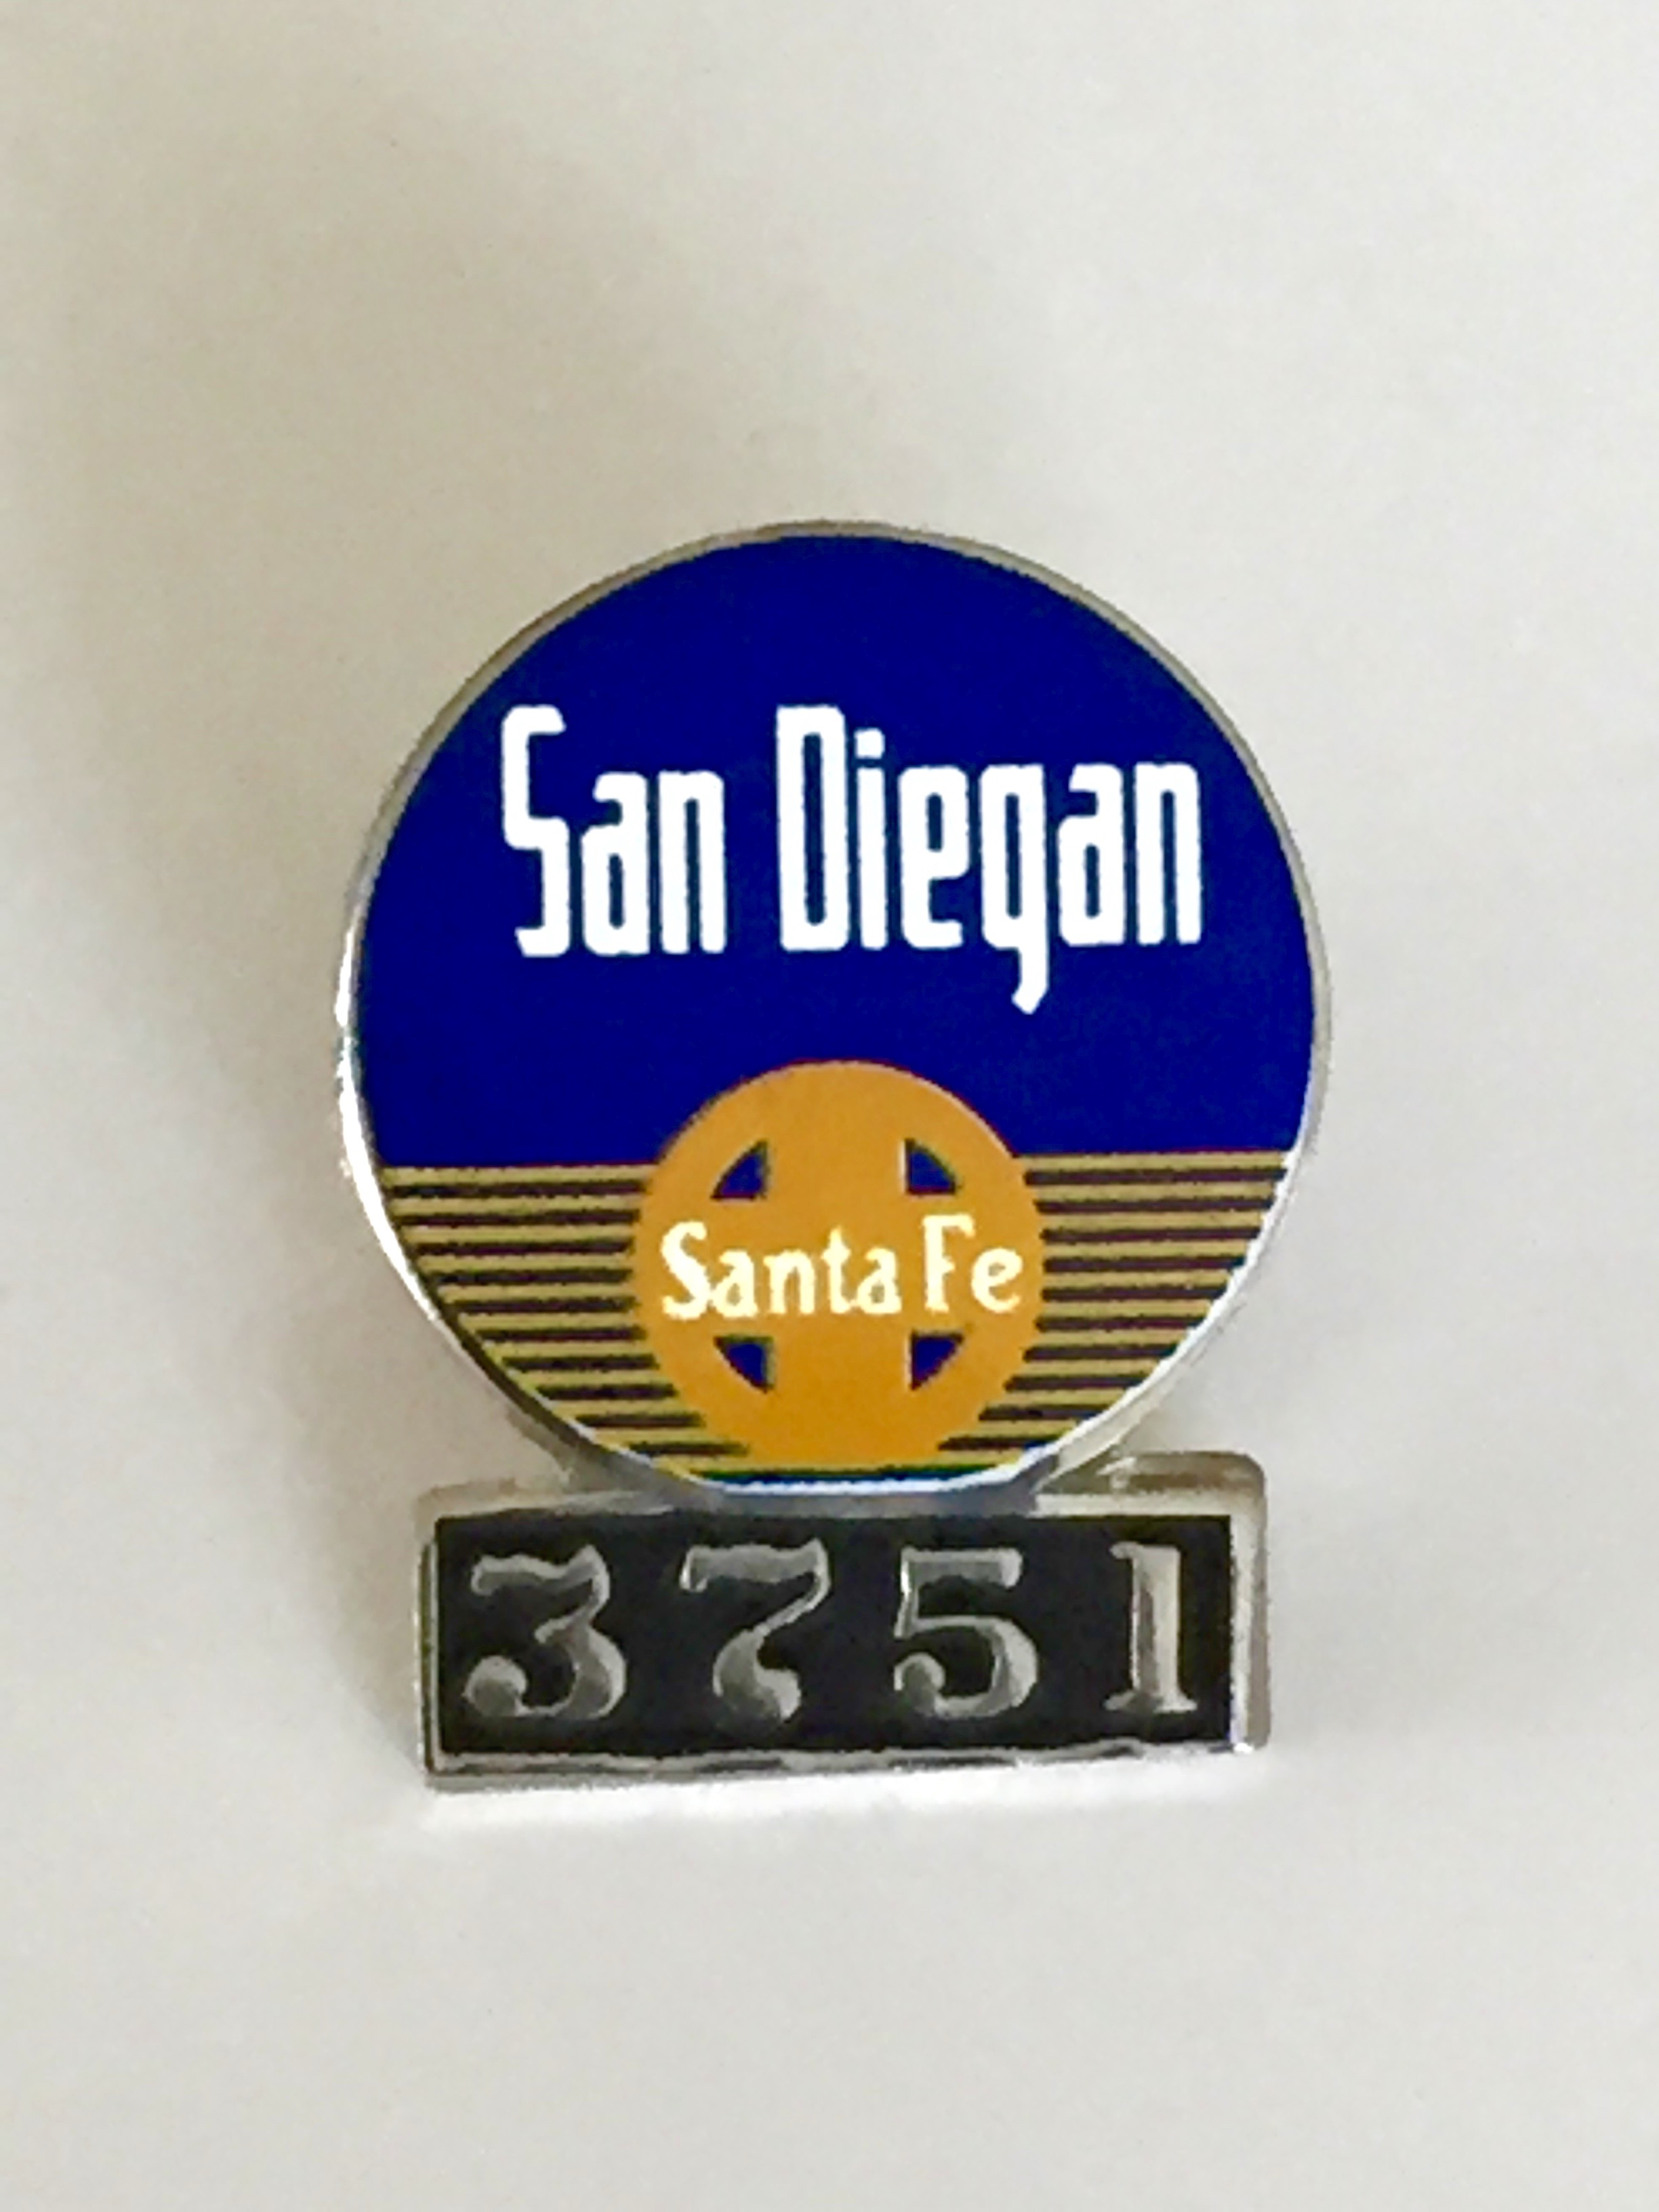 3751 - San Diegan Lapel Pin